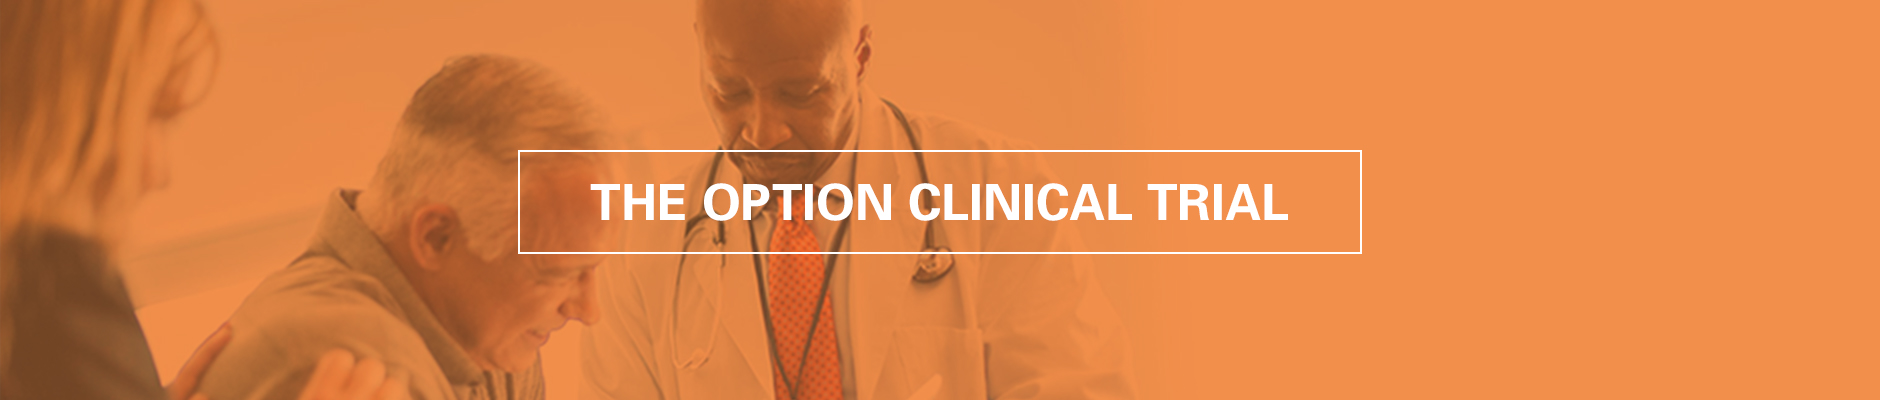 OPTION Clinical Trial Guidelines